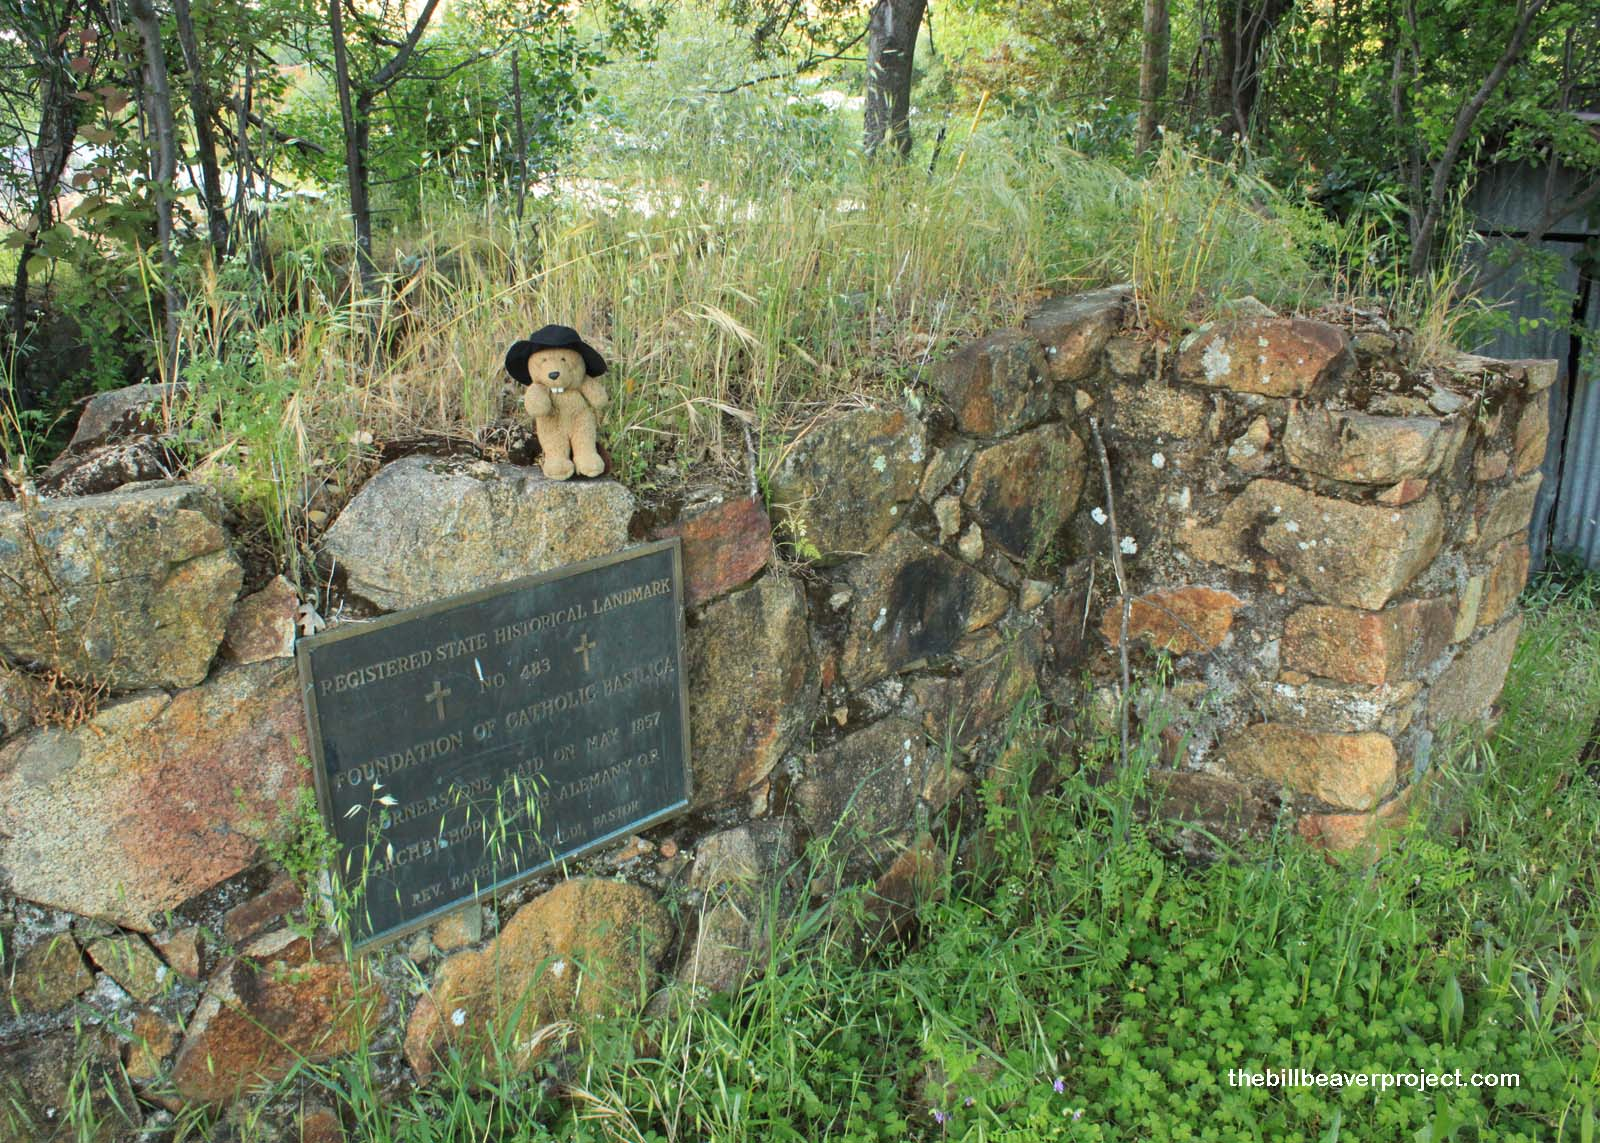 Father Rinaldi's Foundation of 1856